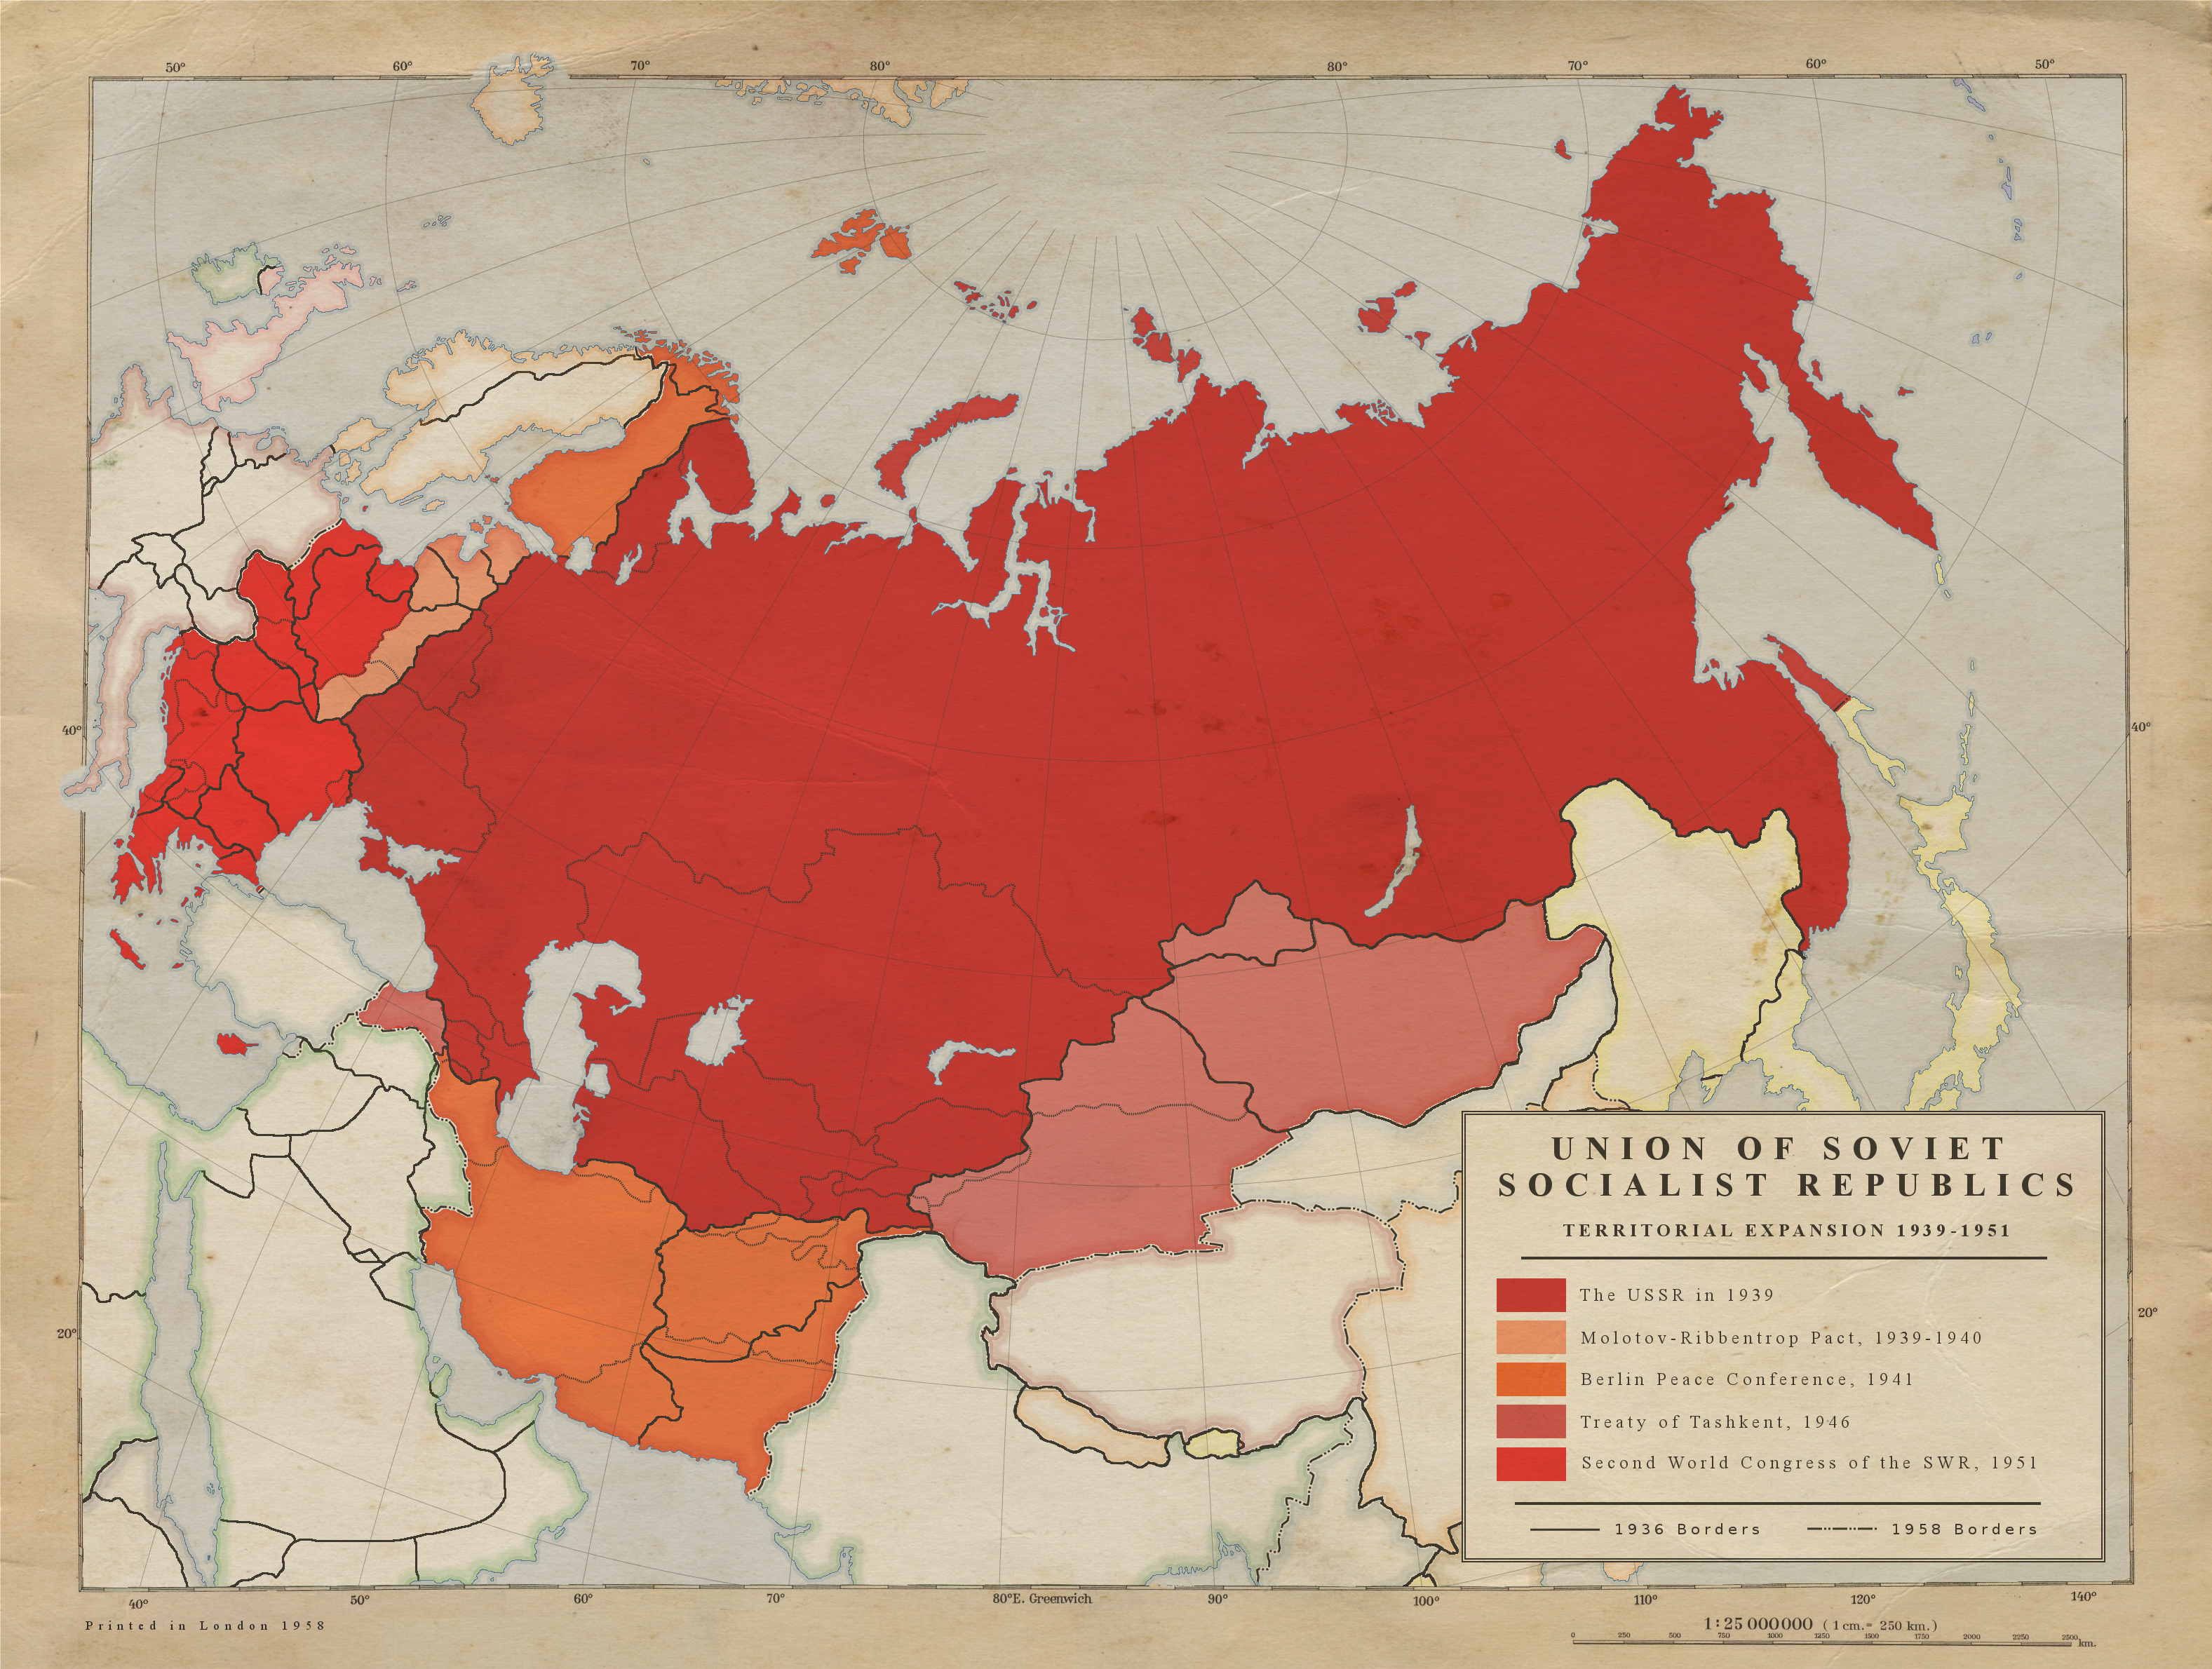 2 ussr territorial expansion 1939 1951 by kuusineniantart ussr territorial expansion 1939 1951 by kuusineniantart on gumiabroncs